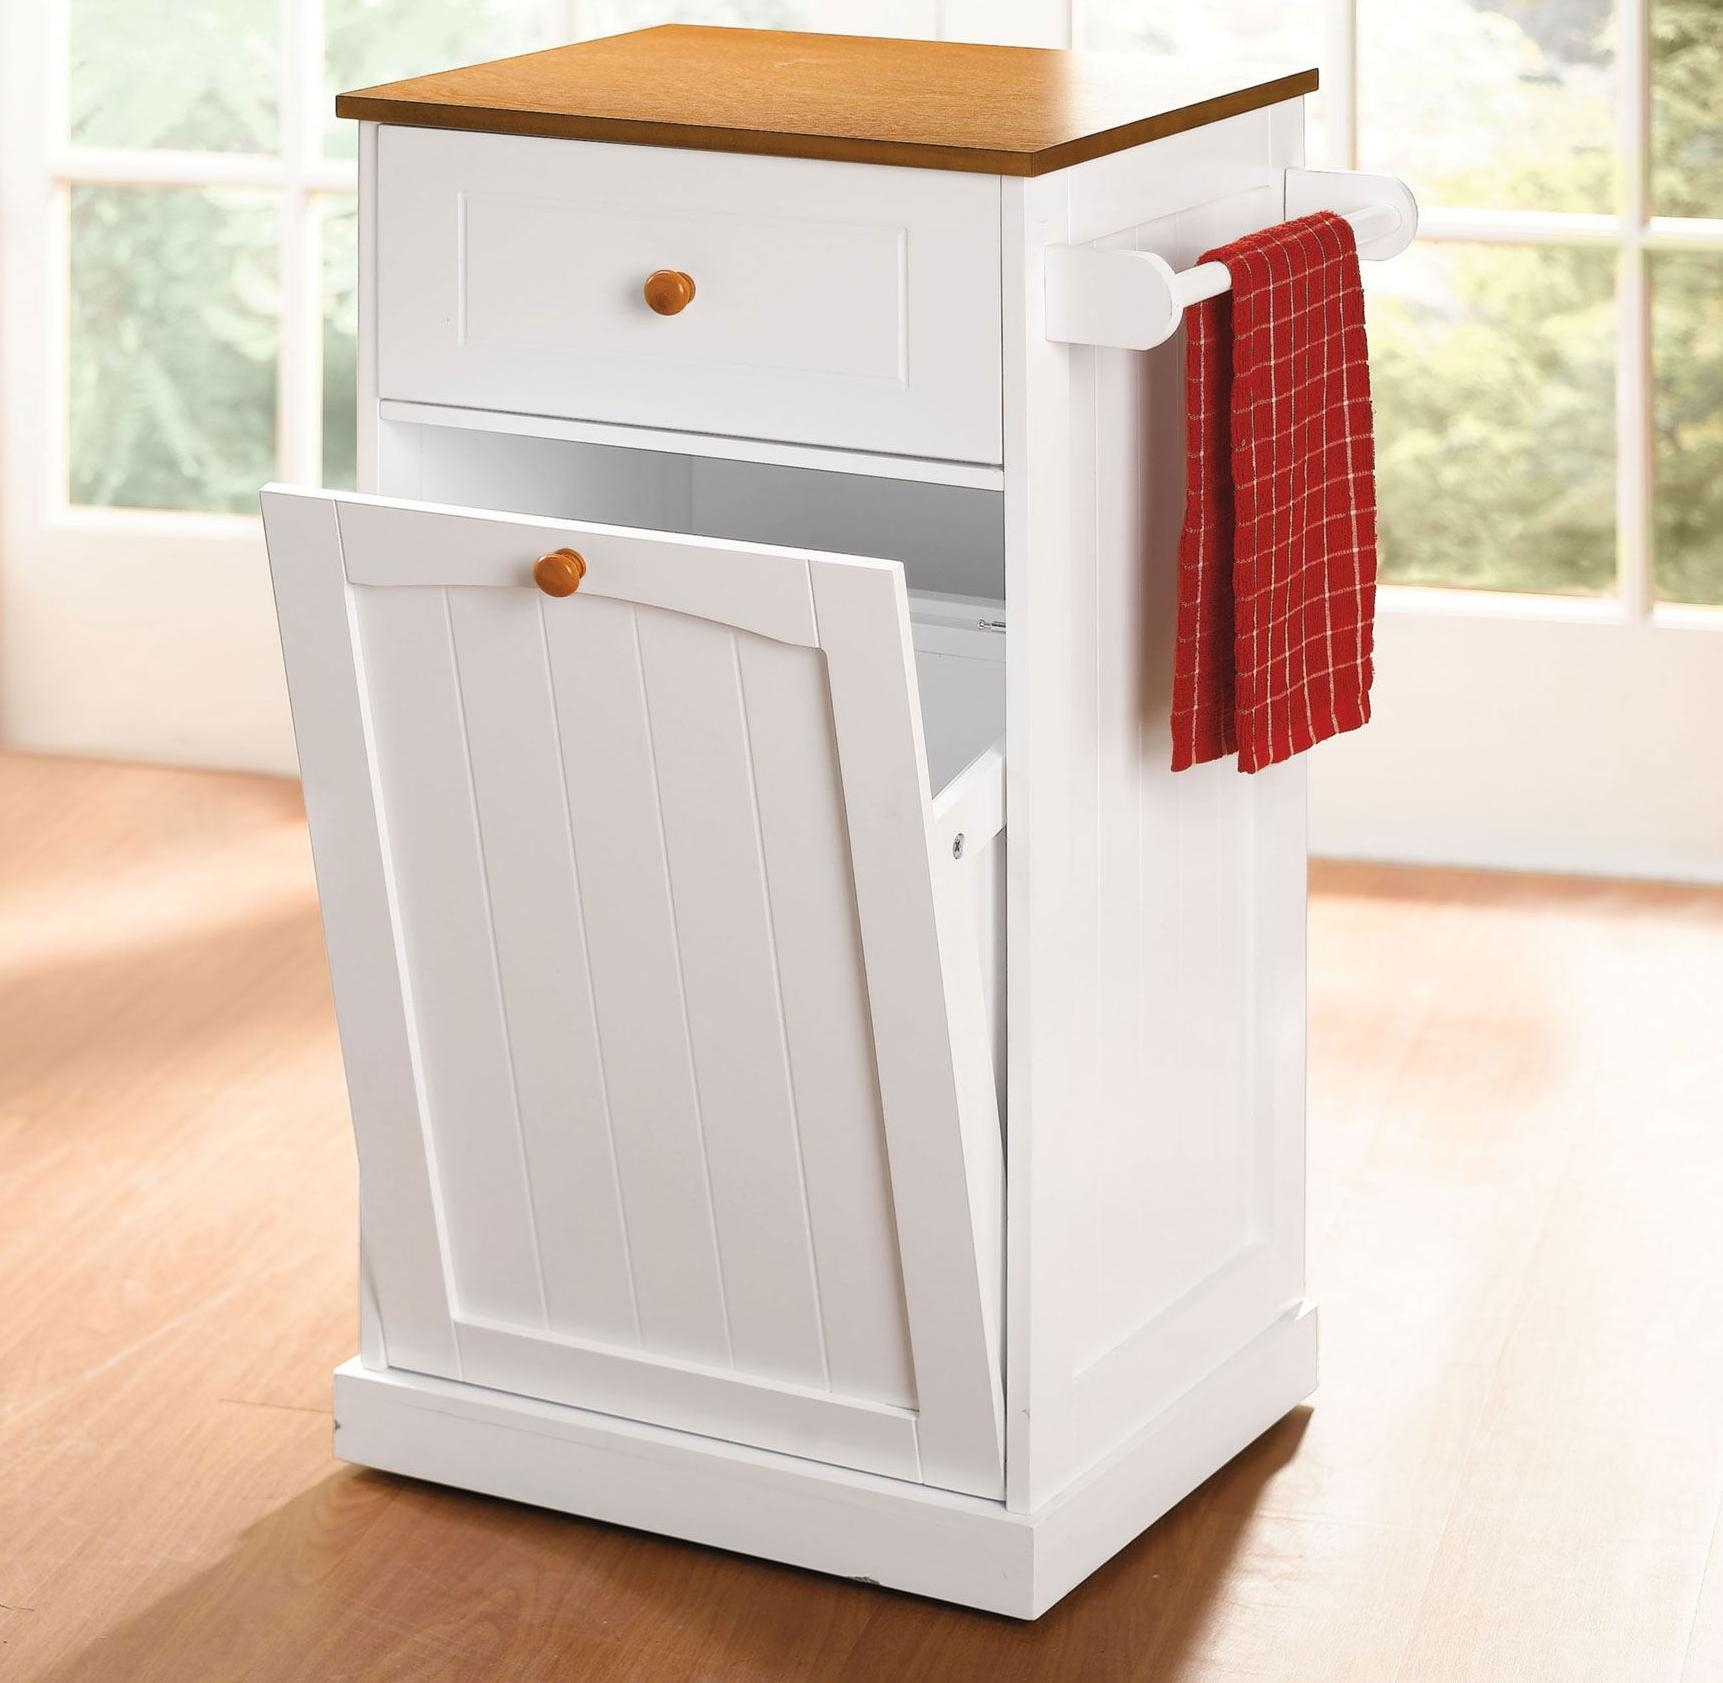 Kitchen Storage Cabinet With Trash Bin